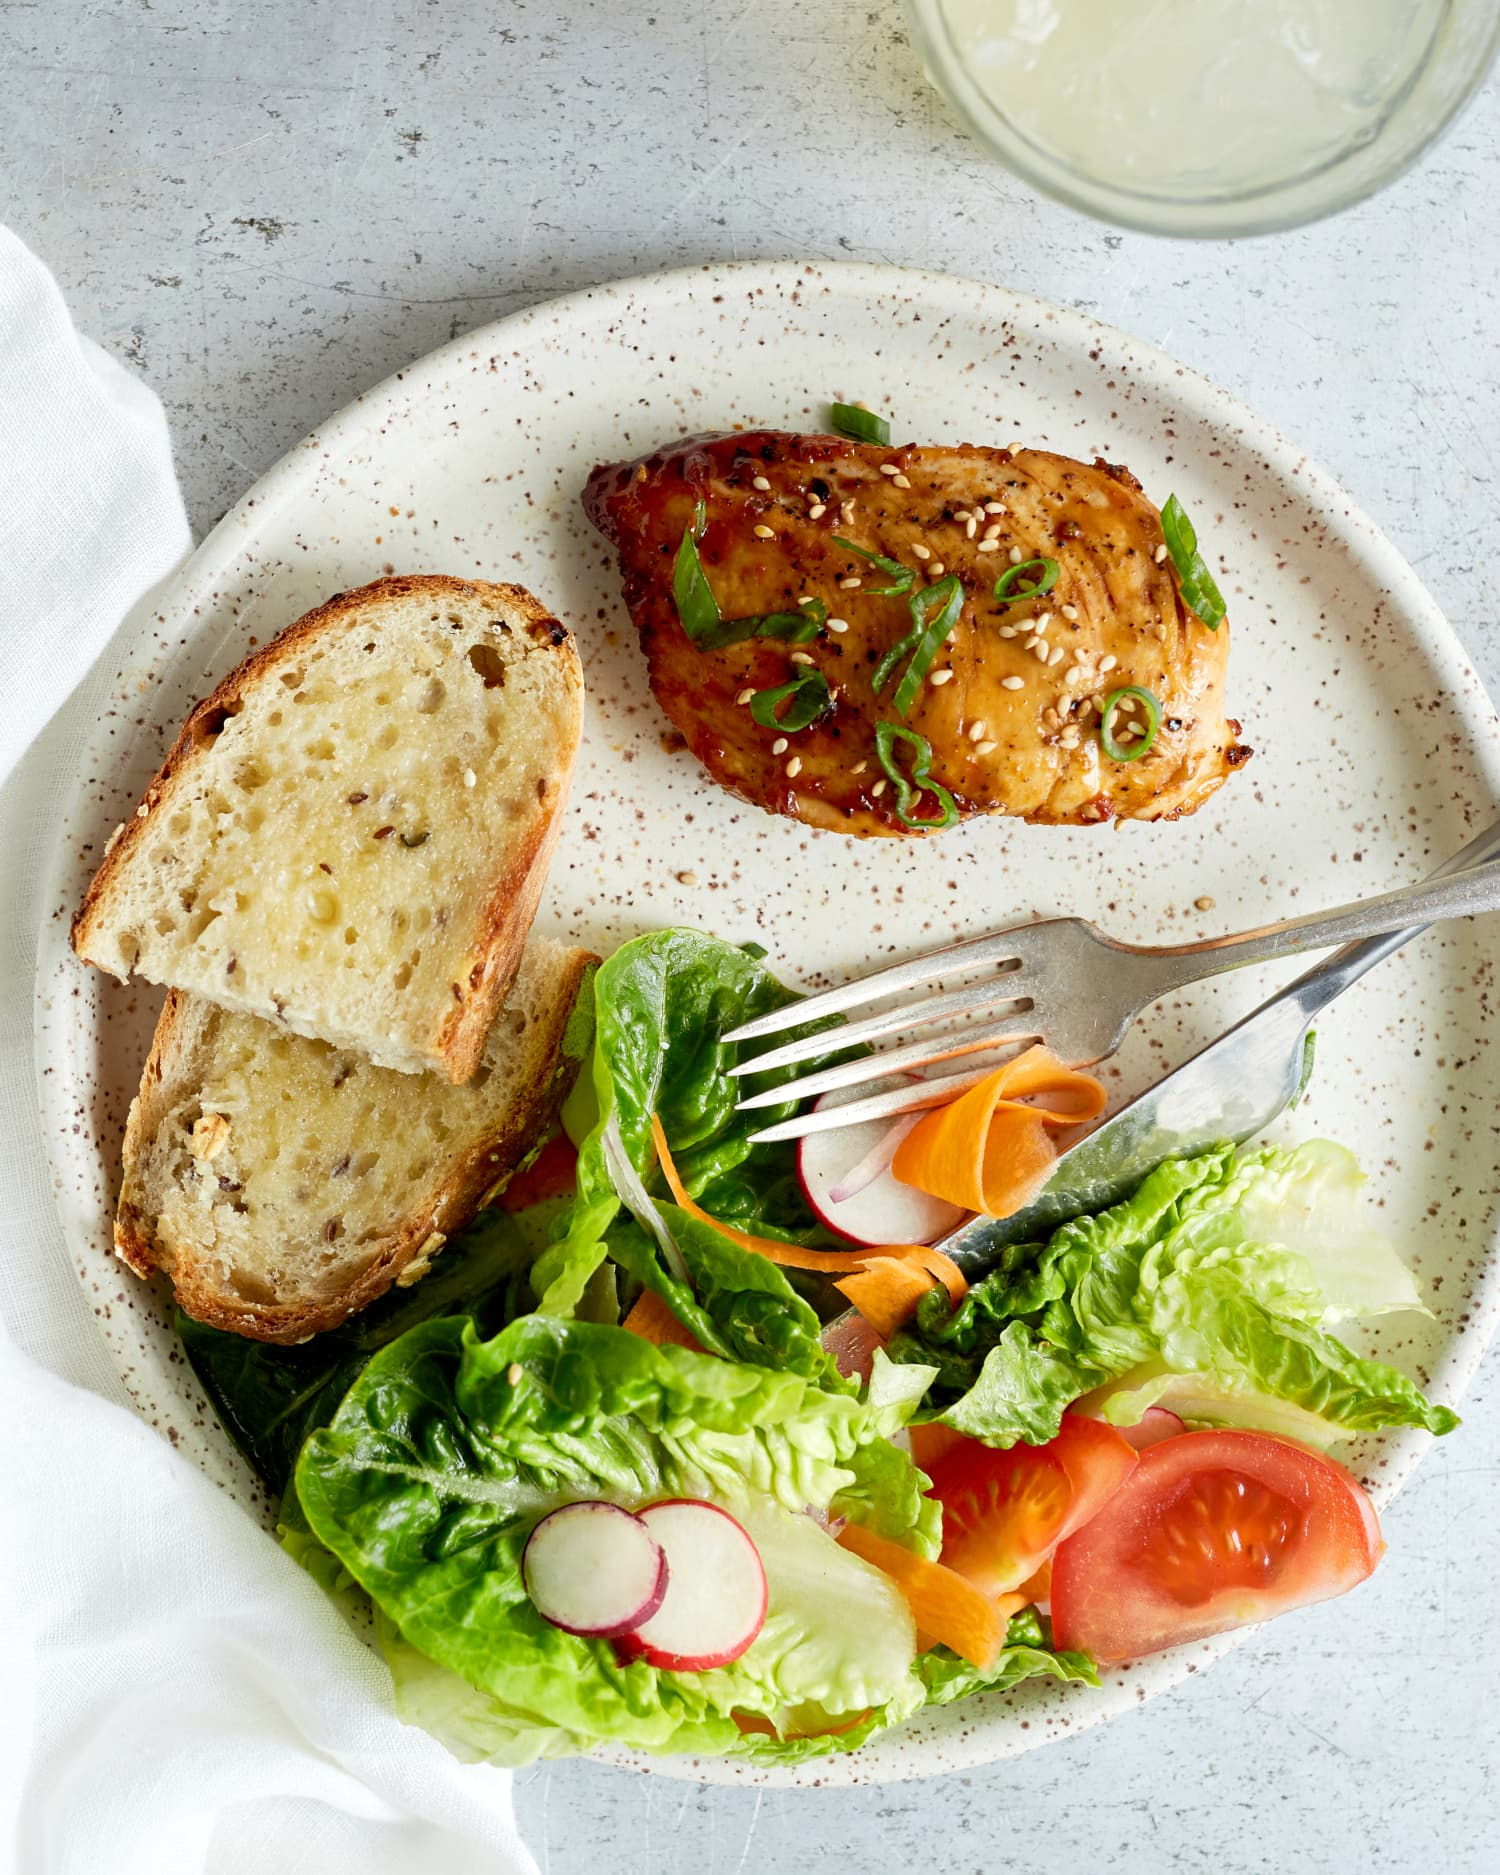 Easy Chicken Breast Recipes In Slow Cooker: Slow Cooker Chicken Breast